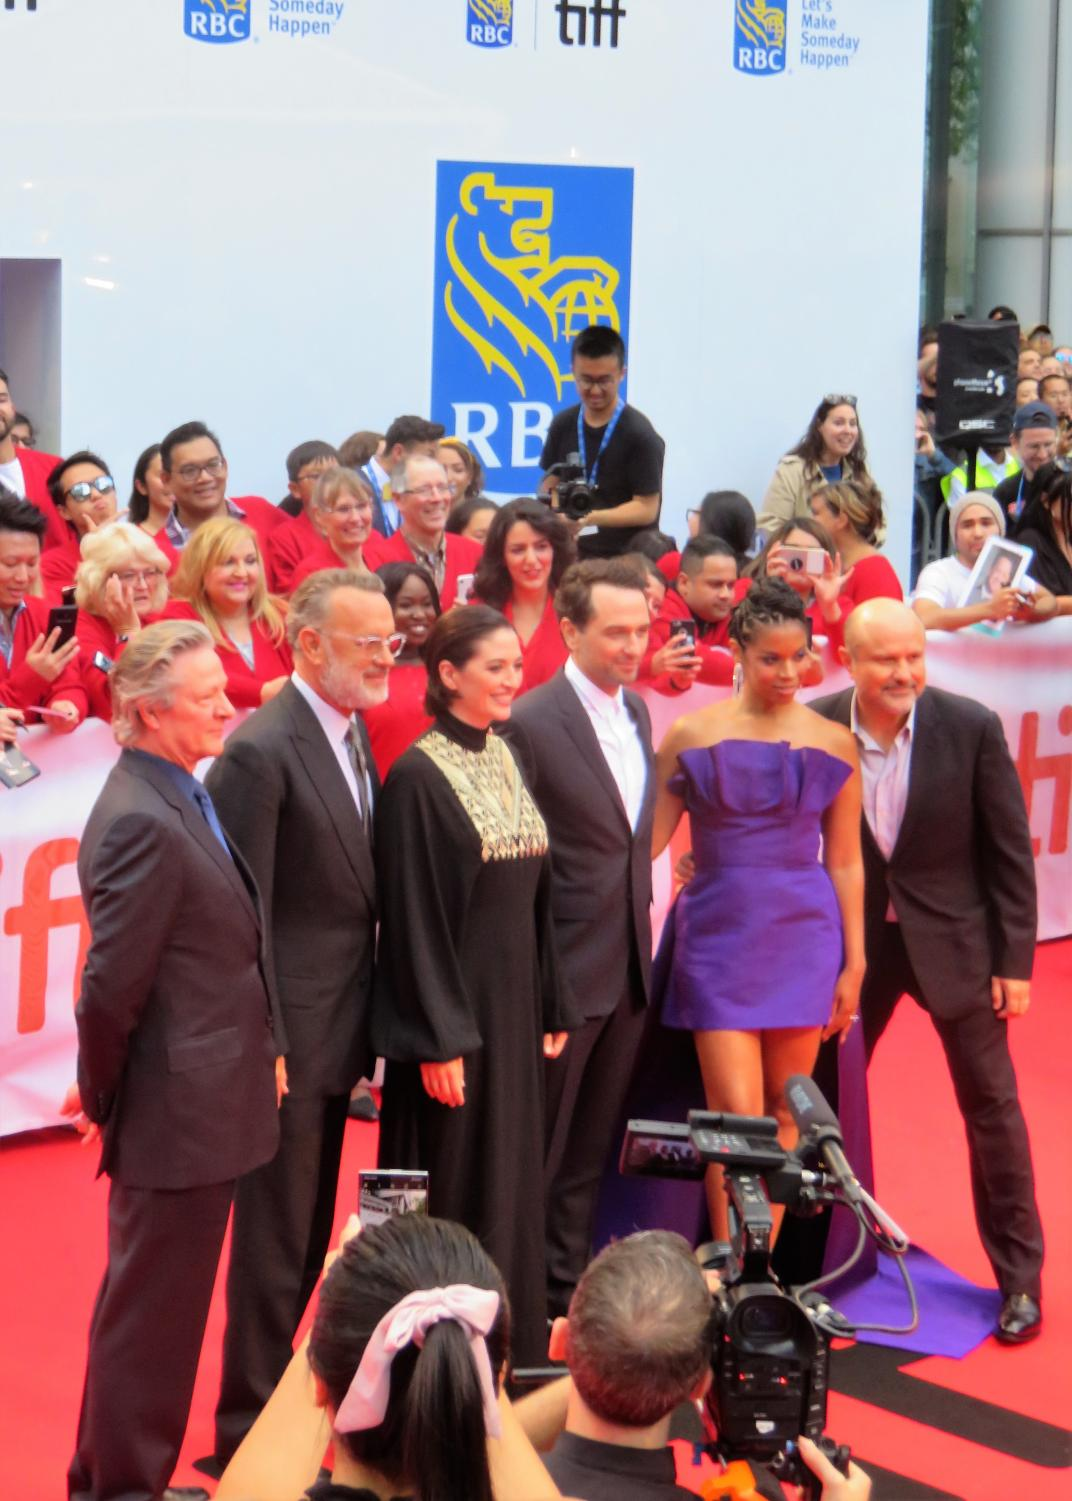 Tom Hanks and other cast members of